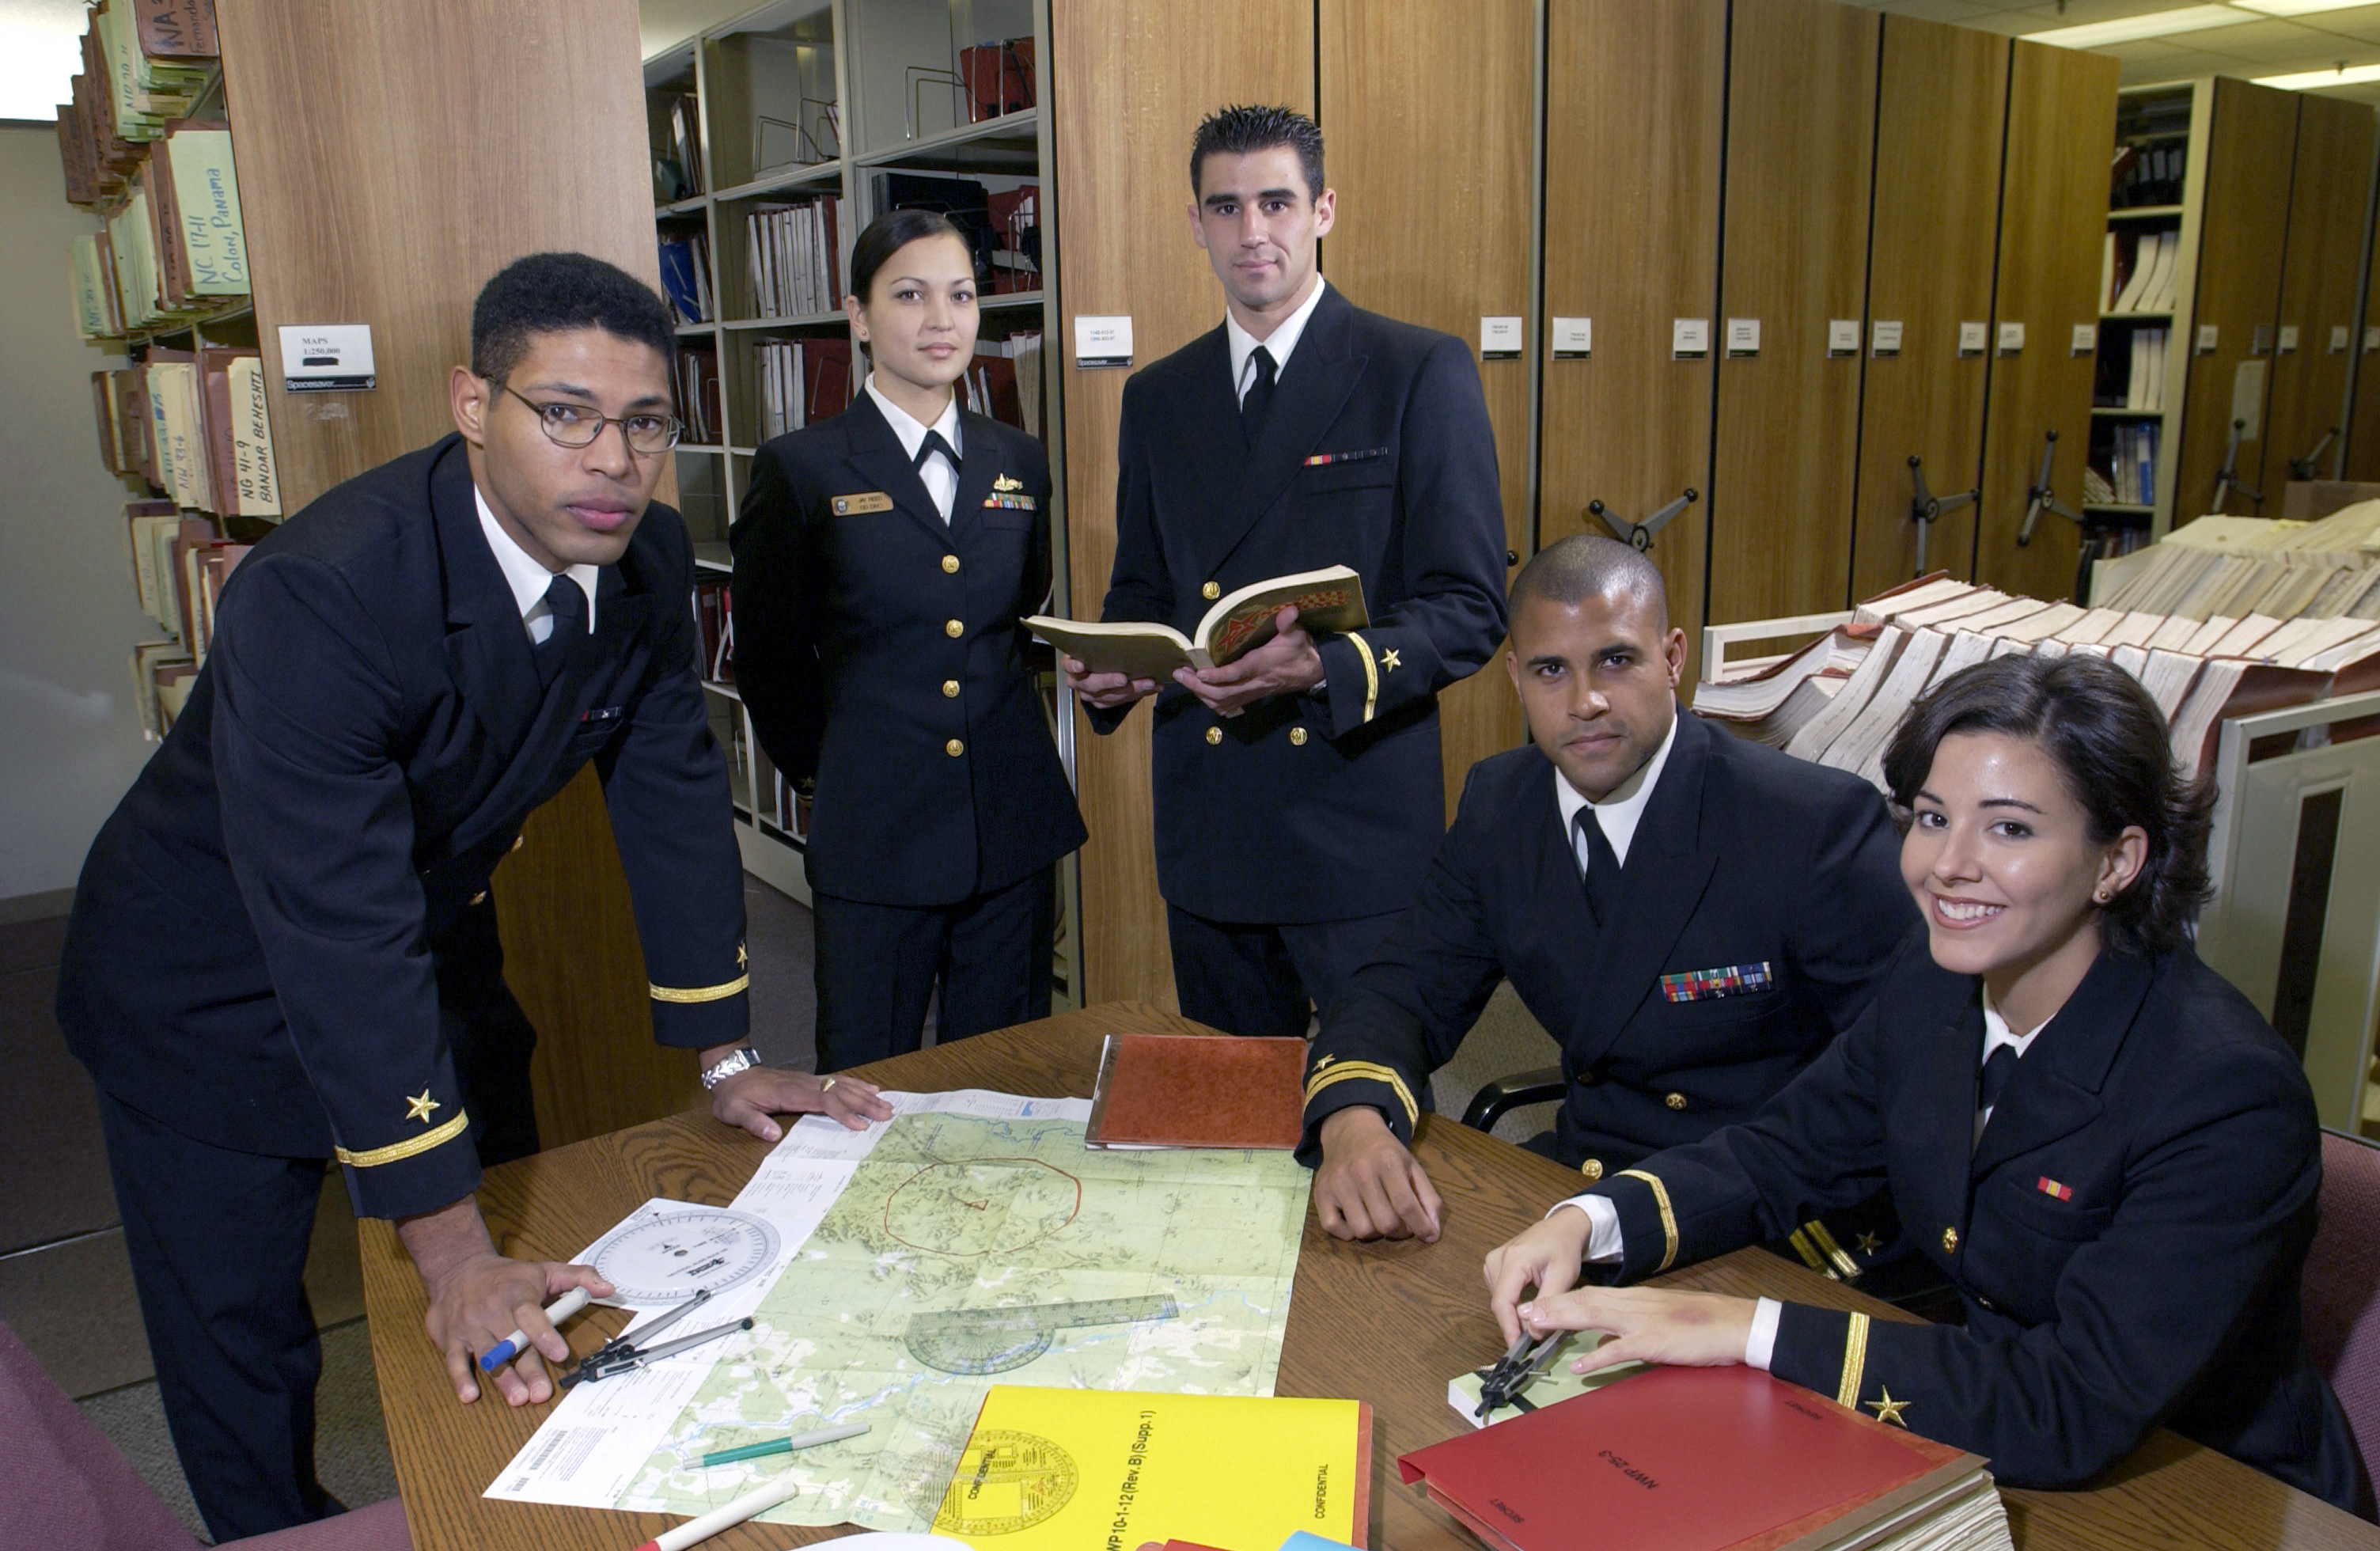 File:US Navy 021206-N-5862D-024 Students at the Navy Marine Corps ...